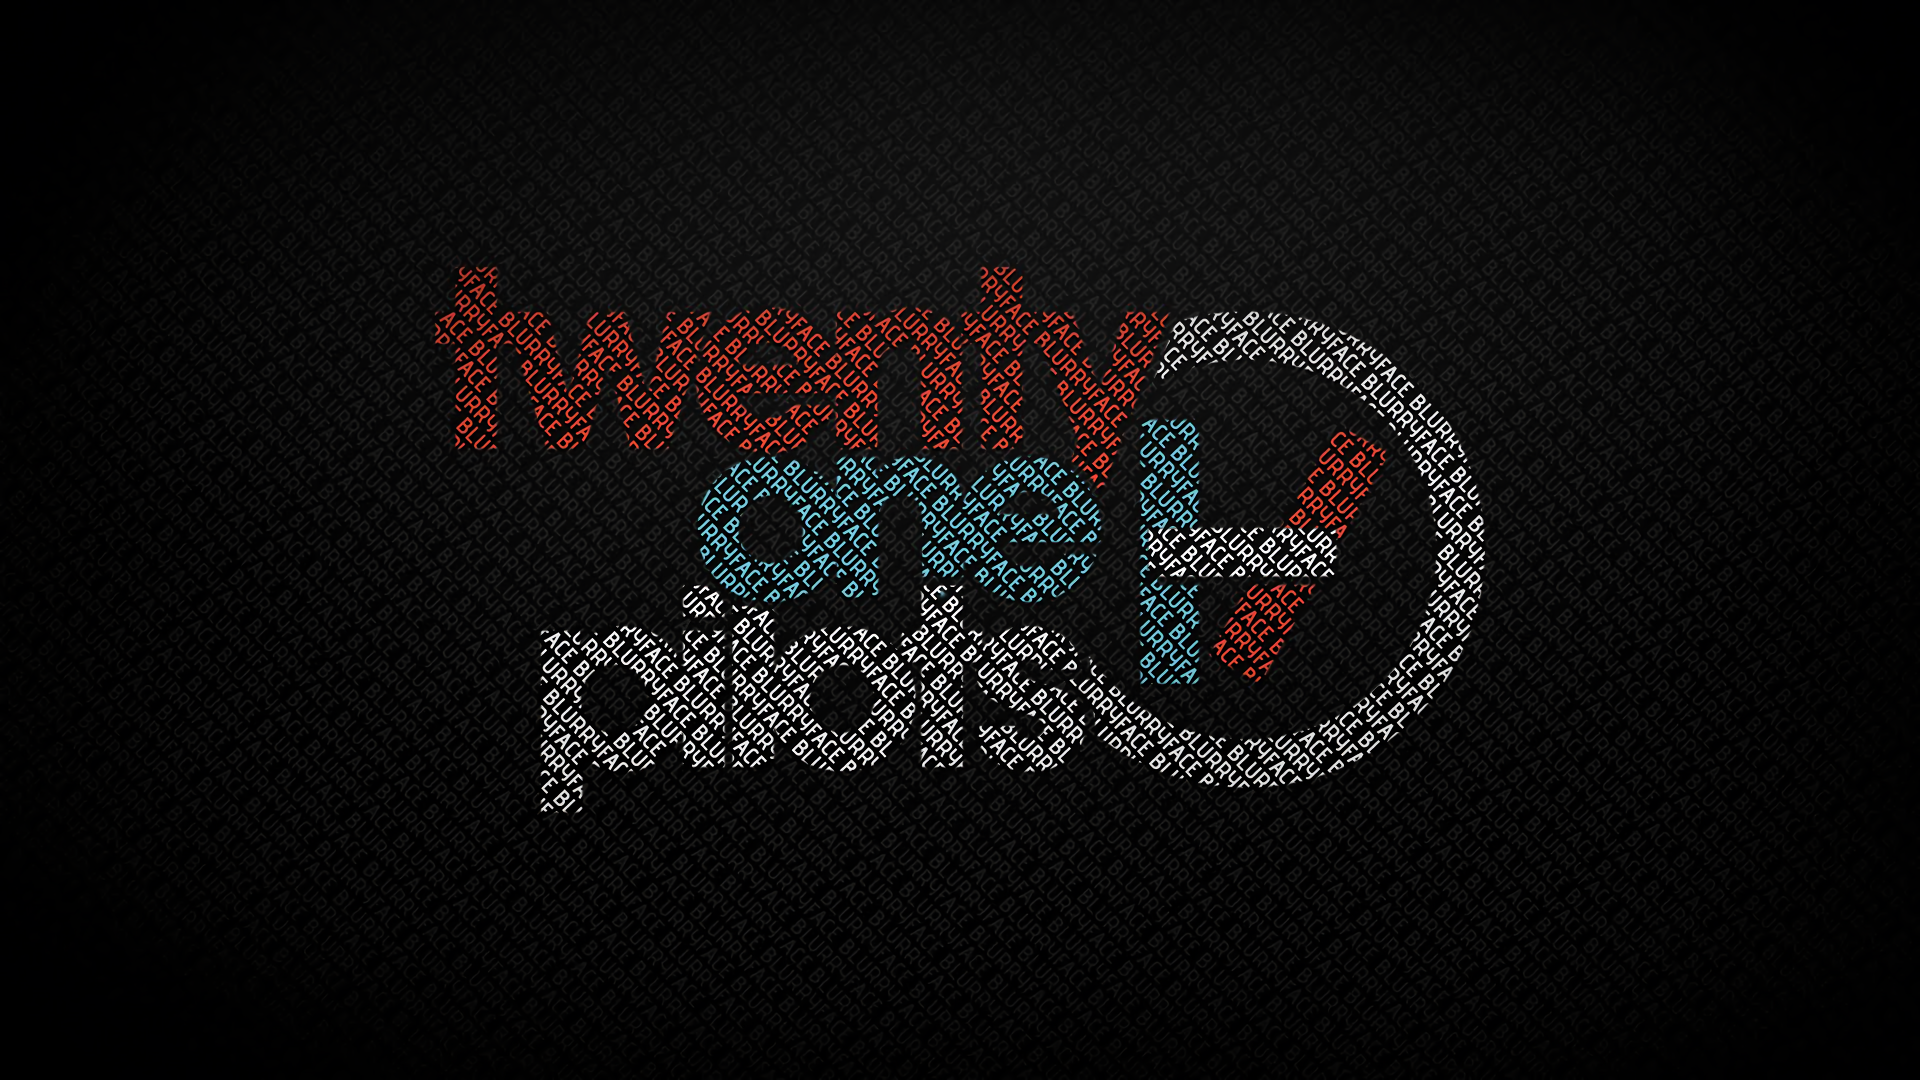 24 Twenty One Pilots Hd Wallpapers Background Images Wallpaper